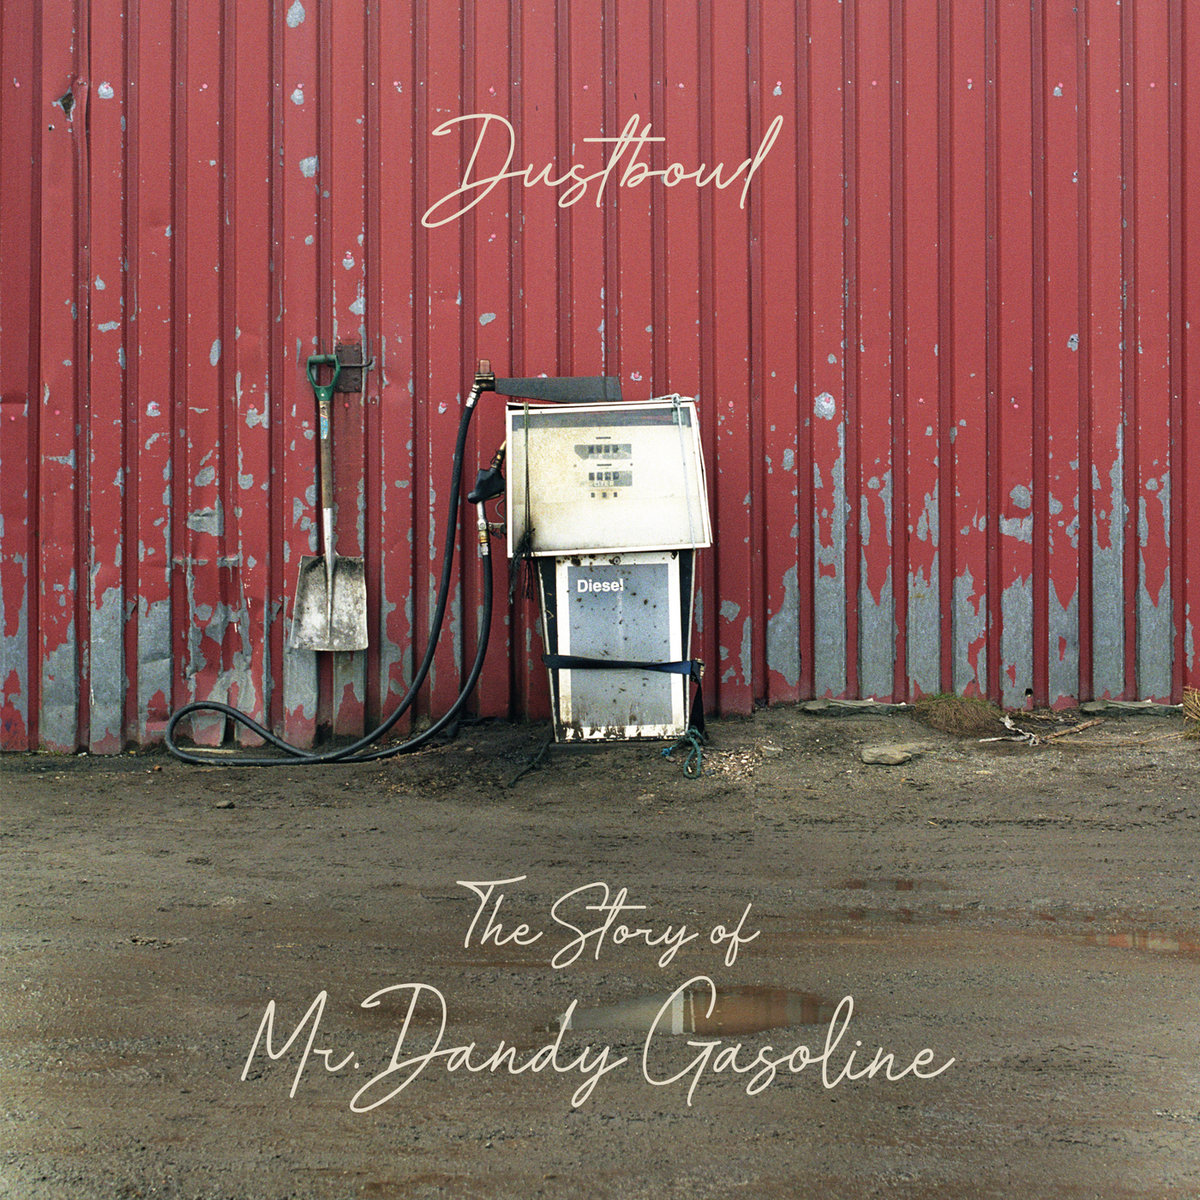 Mr Dandy Gasoline Dustbowl